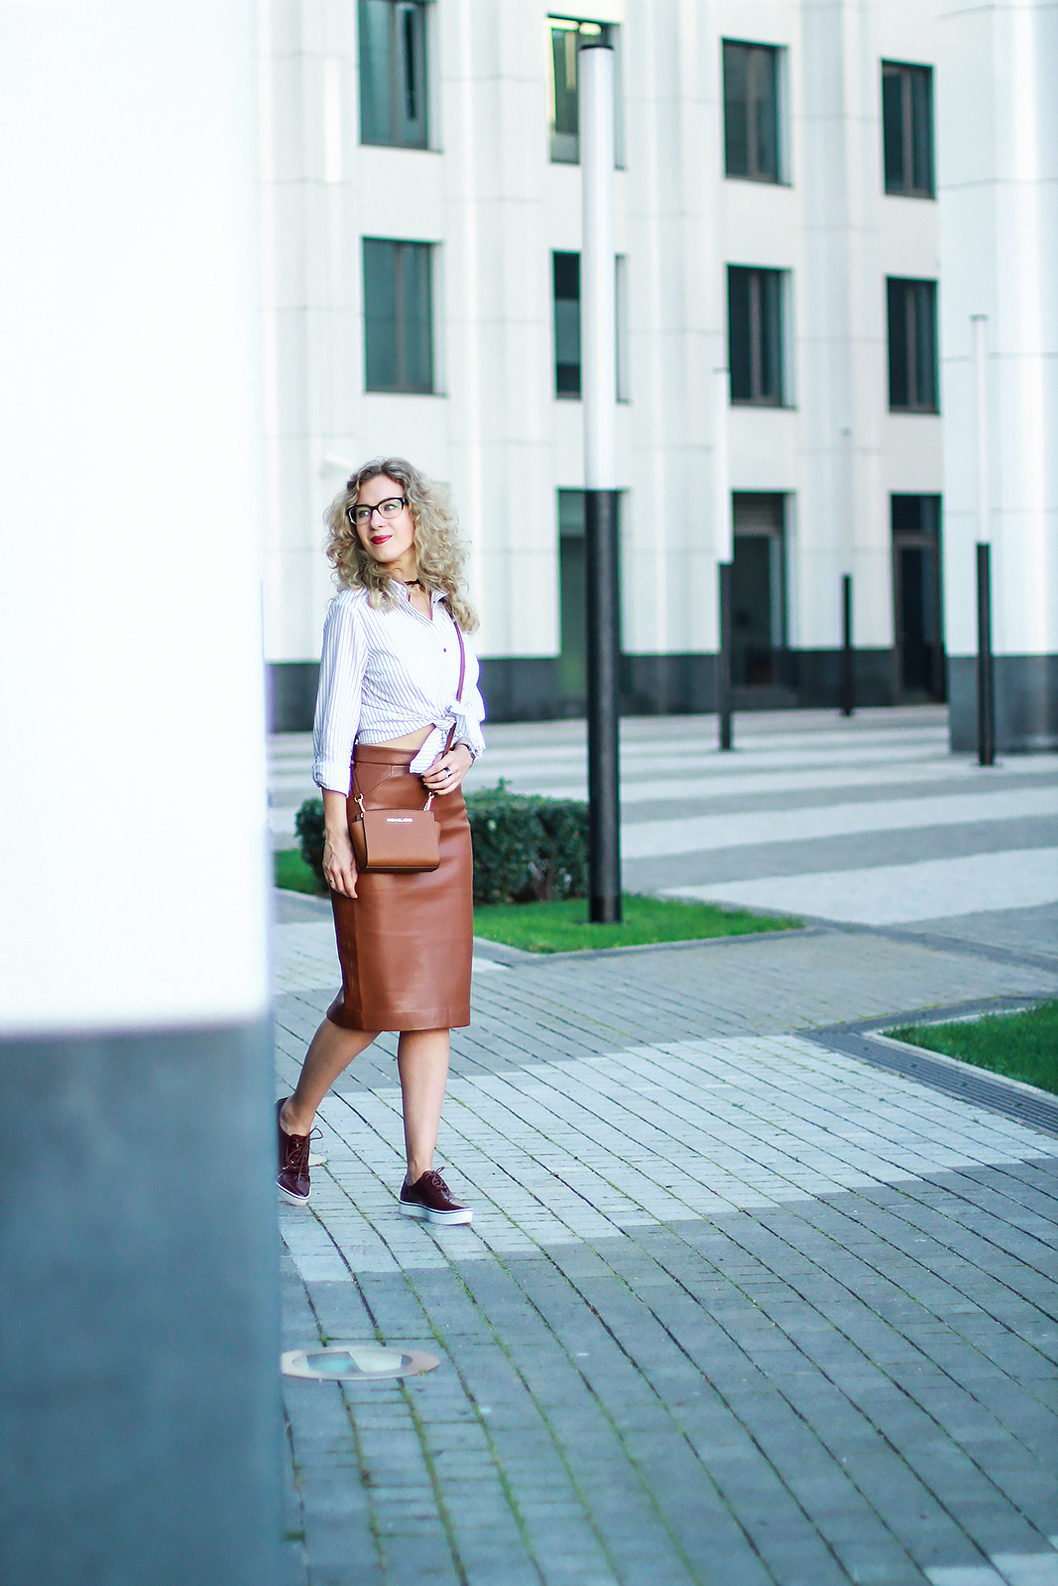 margarita_maslova_leather_skirt_stryped_shirt_marsala_brogues_streetlook